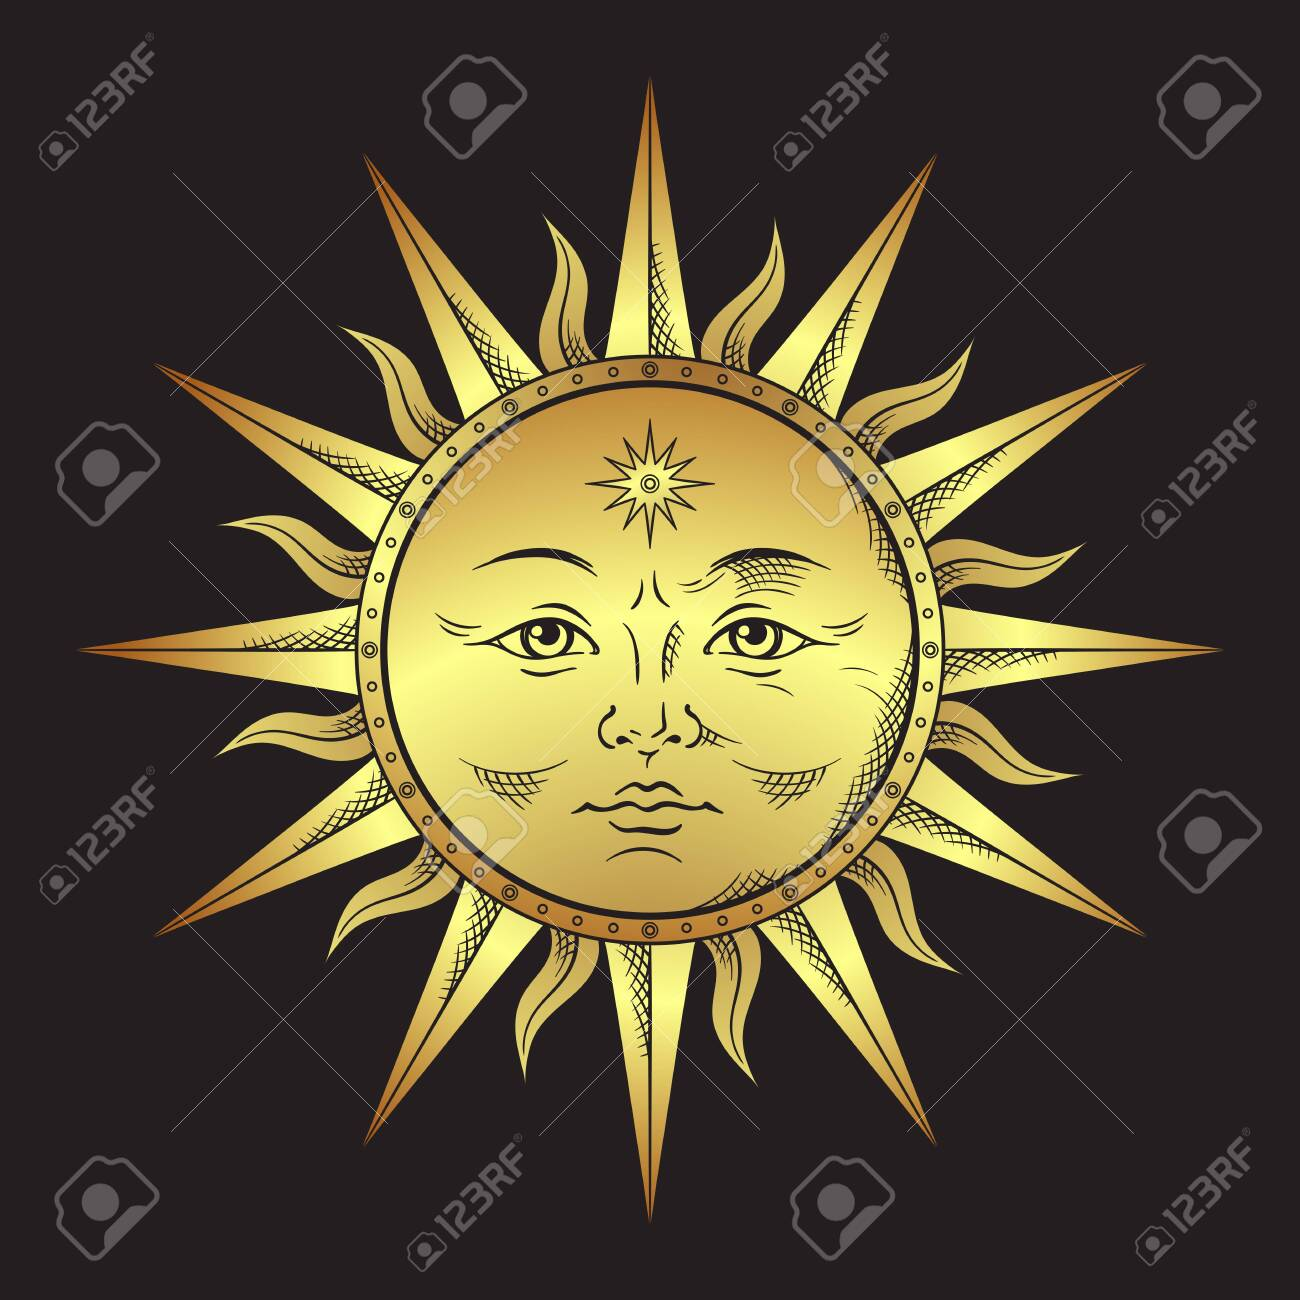 Antique style gold sun hand drawn line art. Boho chic tattoo, poster, altar veil, tapestry or fabric print design vector illustration - 135608611